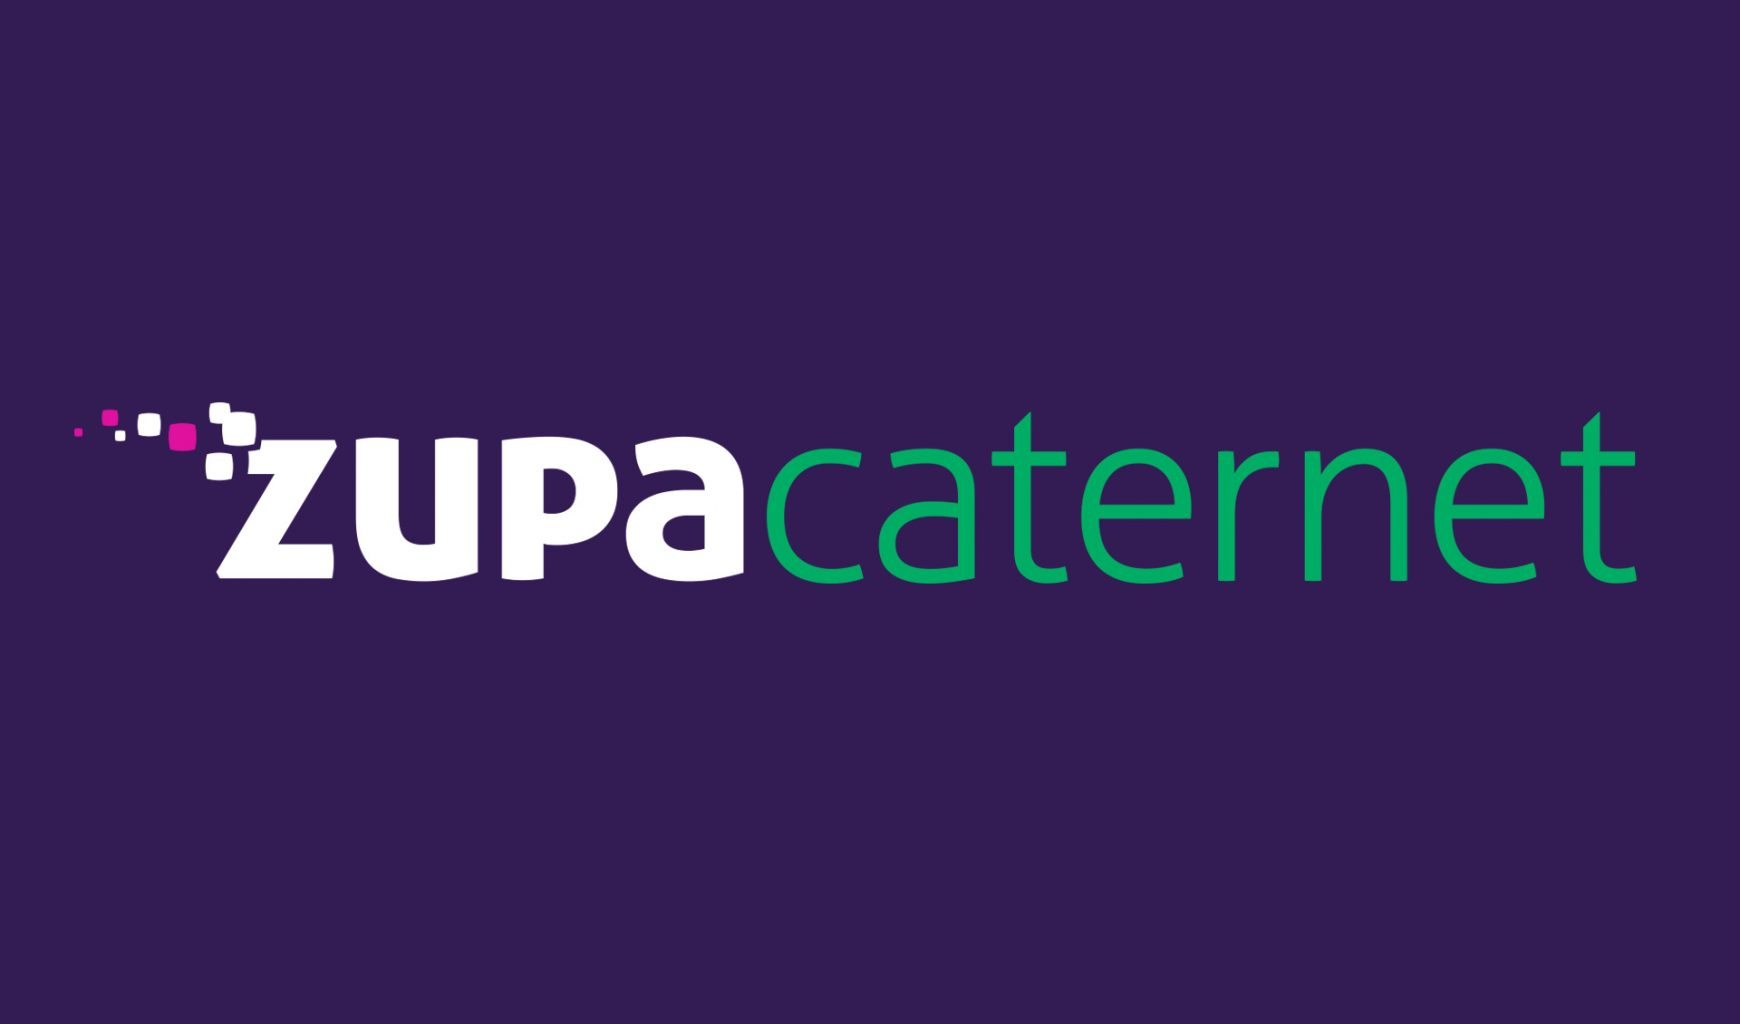 ZupaCaternet logo